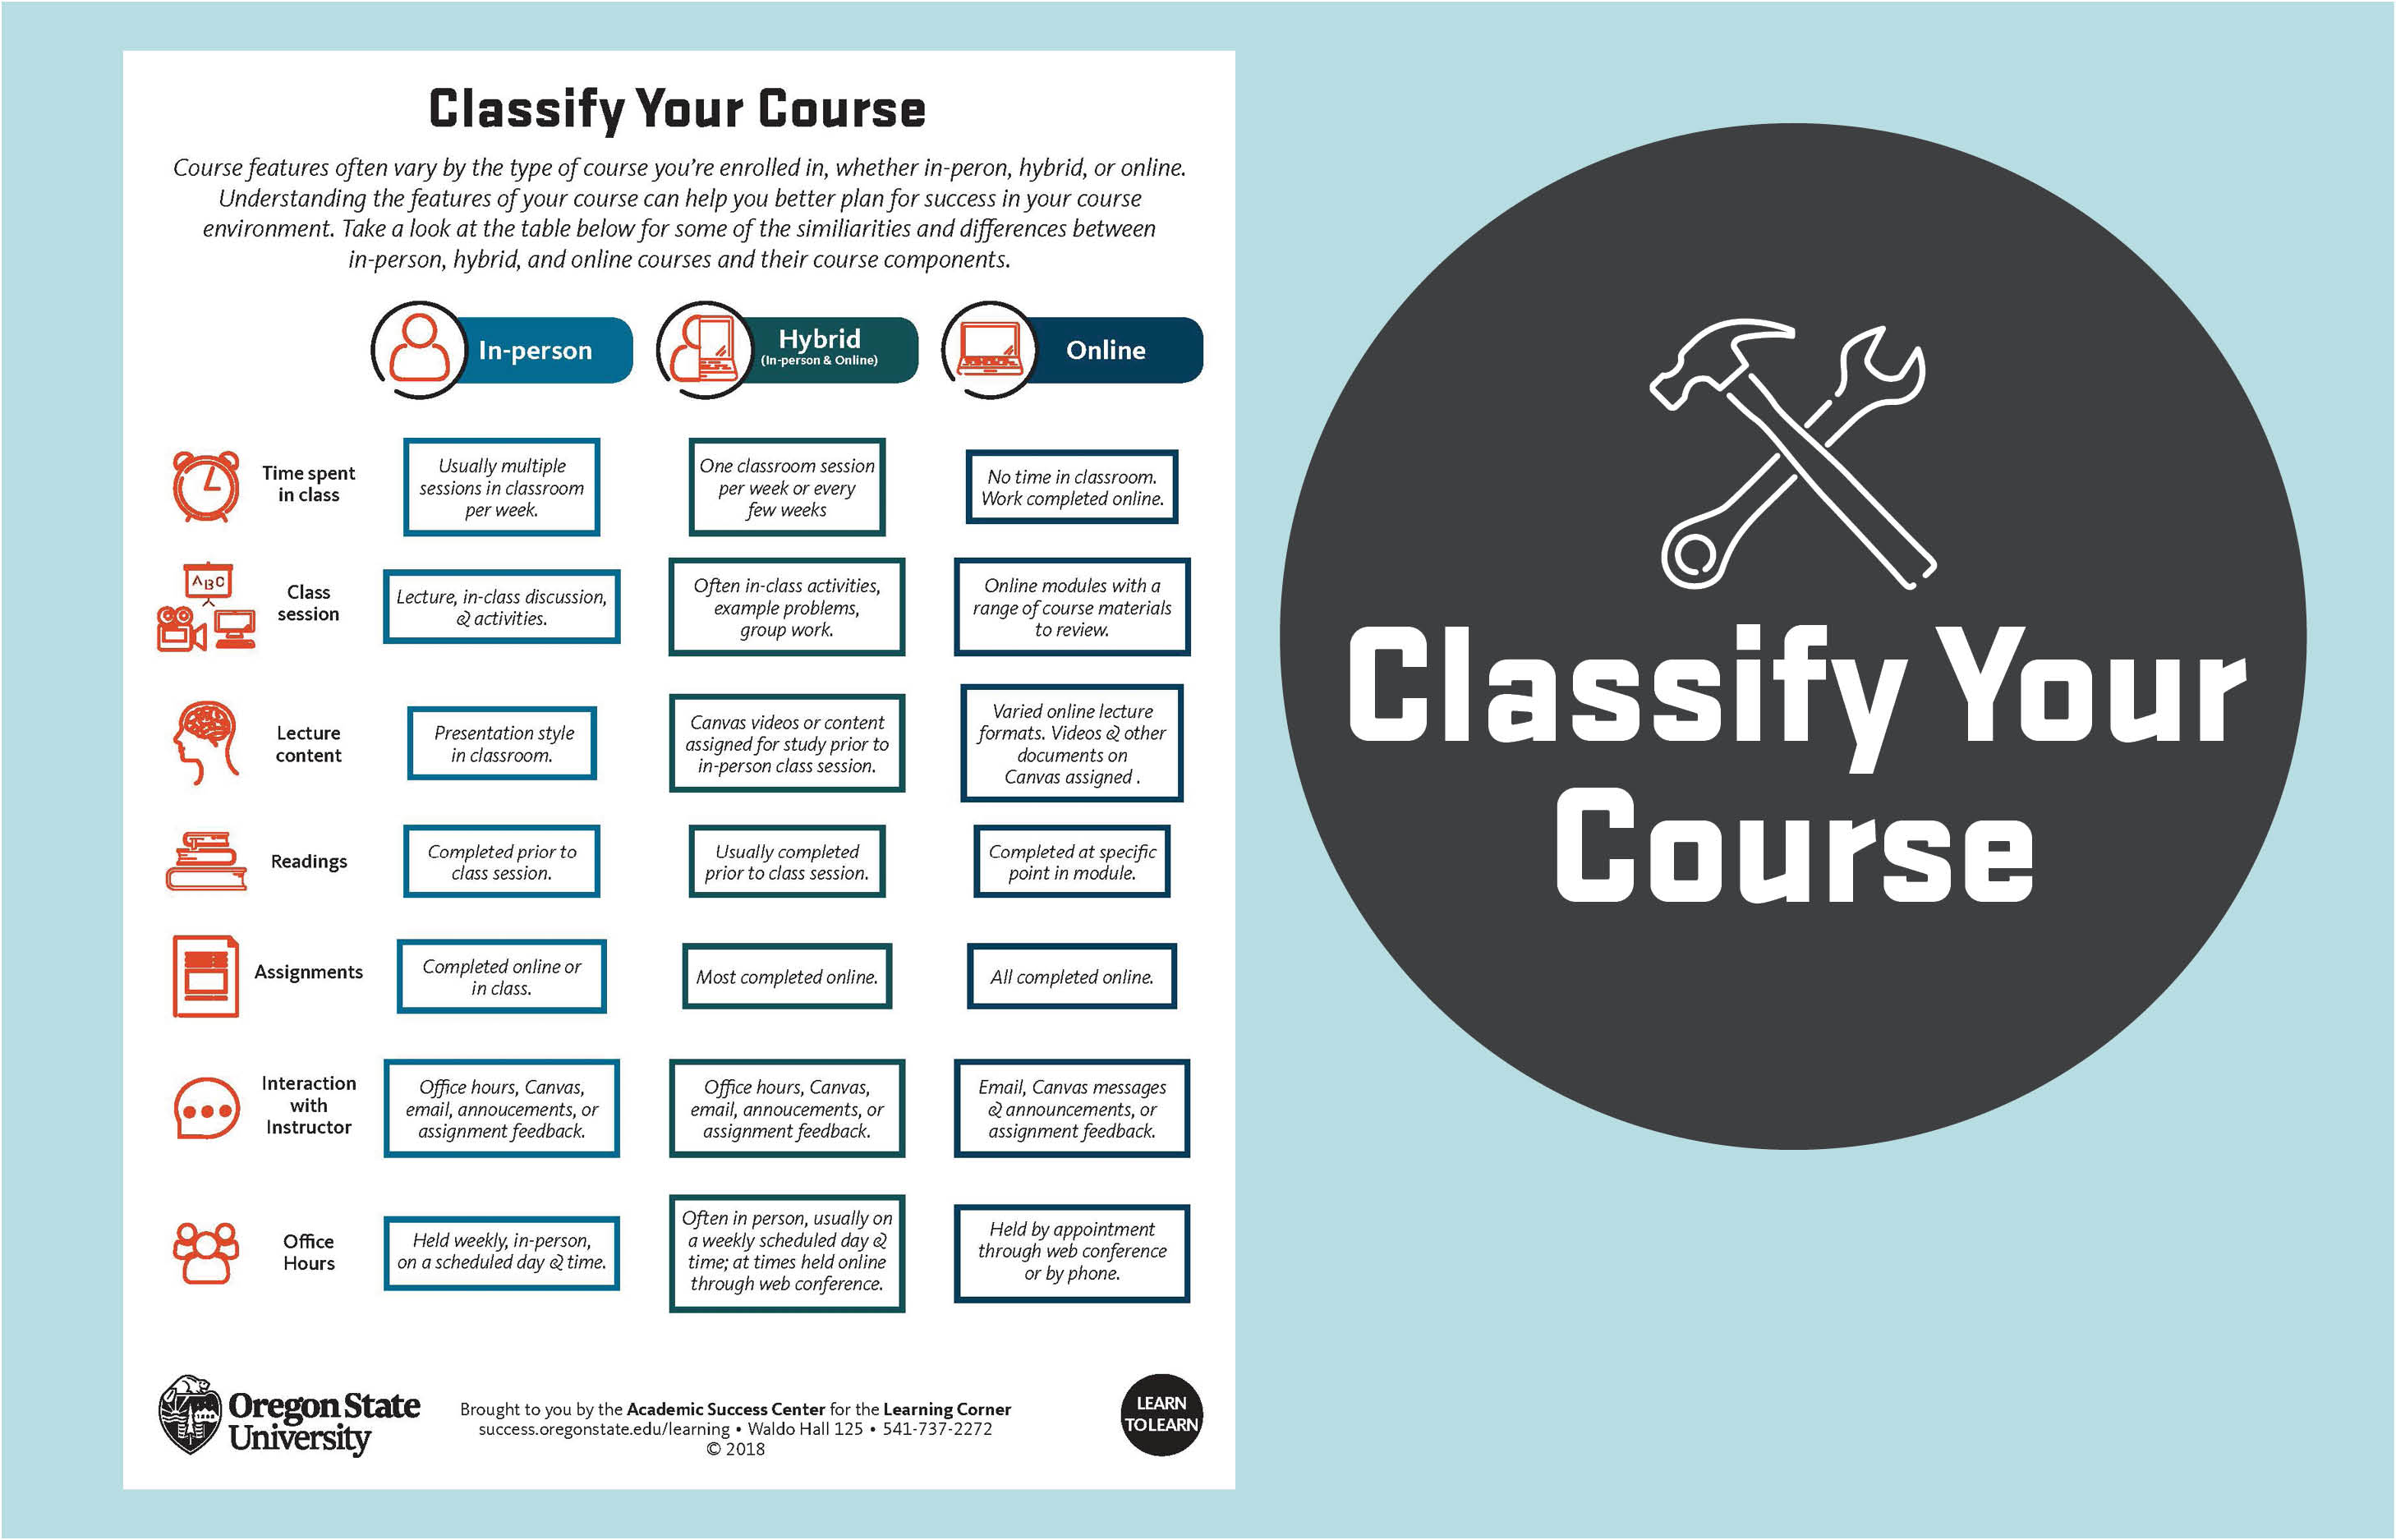 Classify Your Course